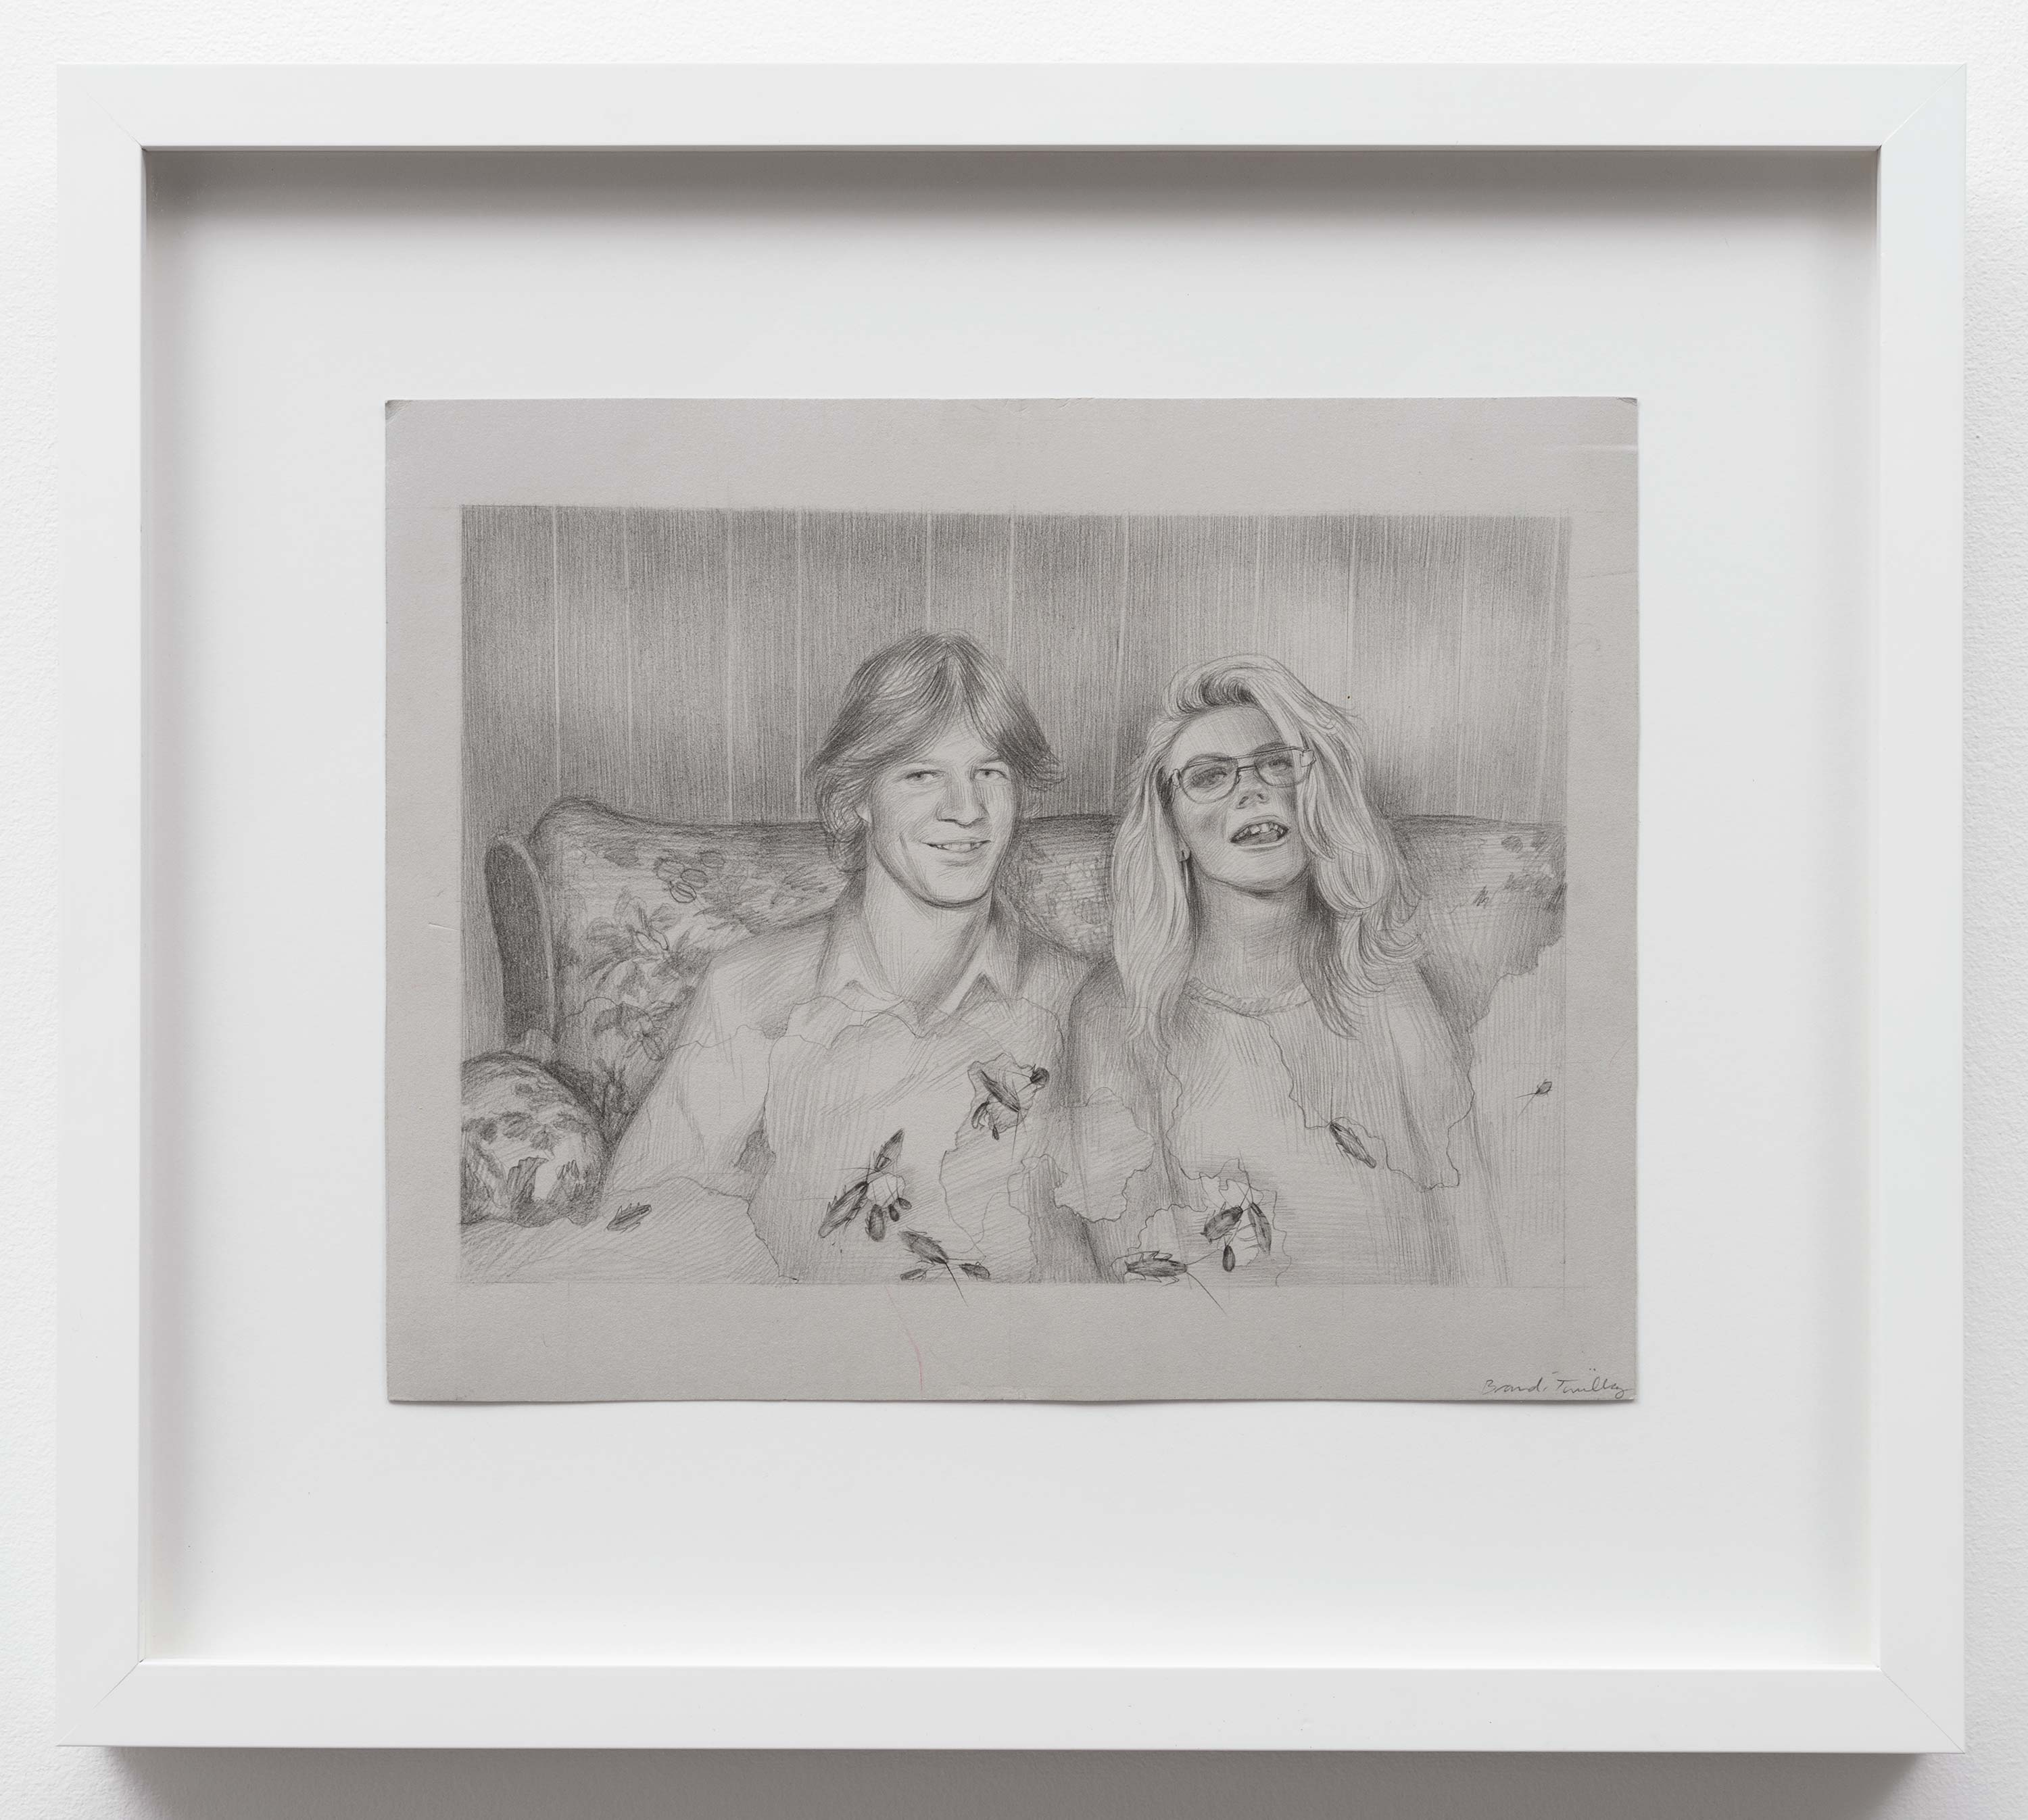 Brandi Twilley<br>On the Couch with Roaches<br>2015<br>Graphite on gray paper<br>9 x 11.5 inches (23 x 29 cm)